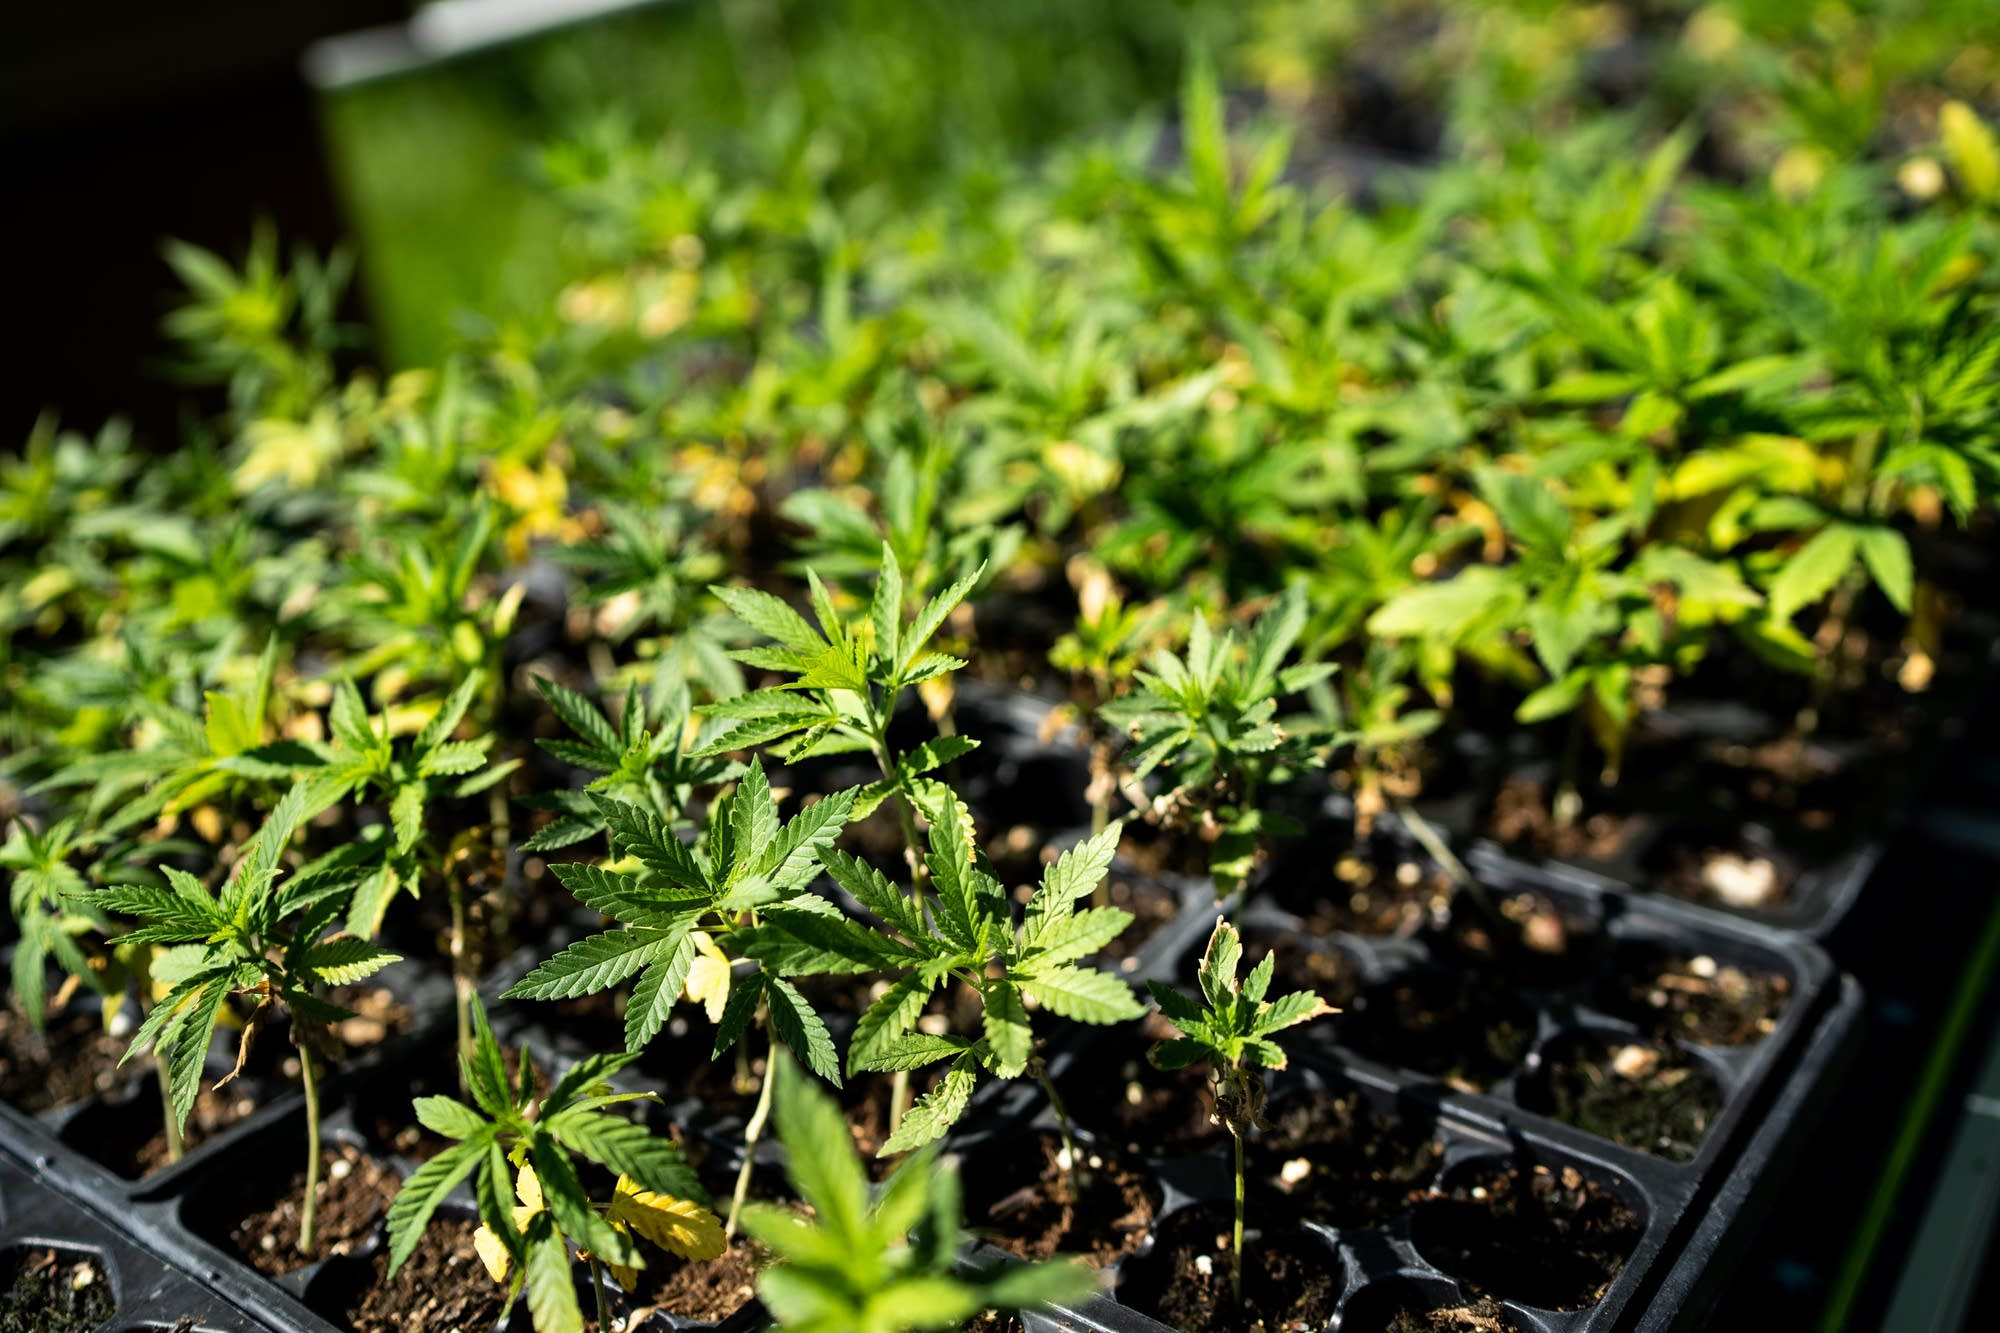 Small hemp plants brought outside from a grow room wait to be planted.